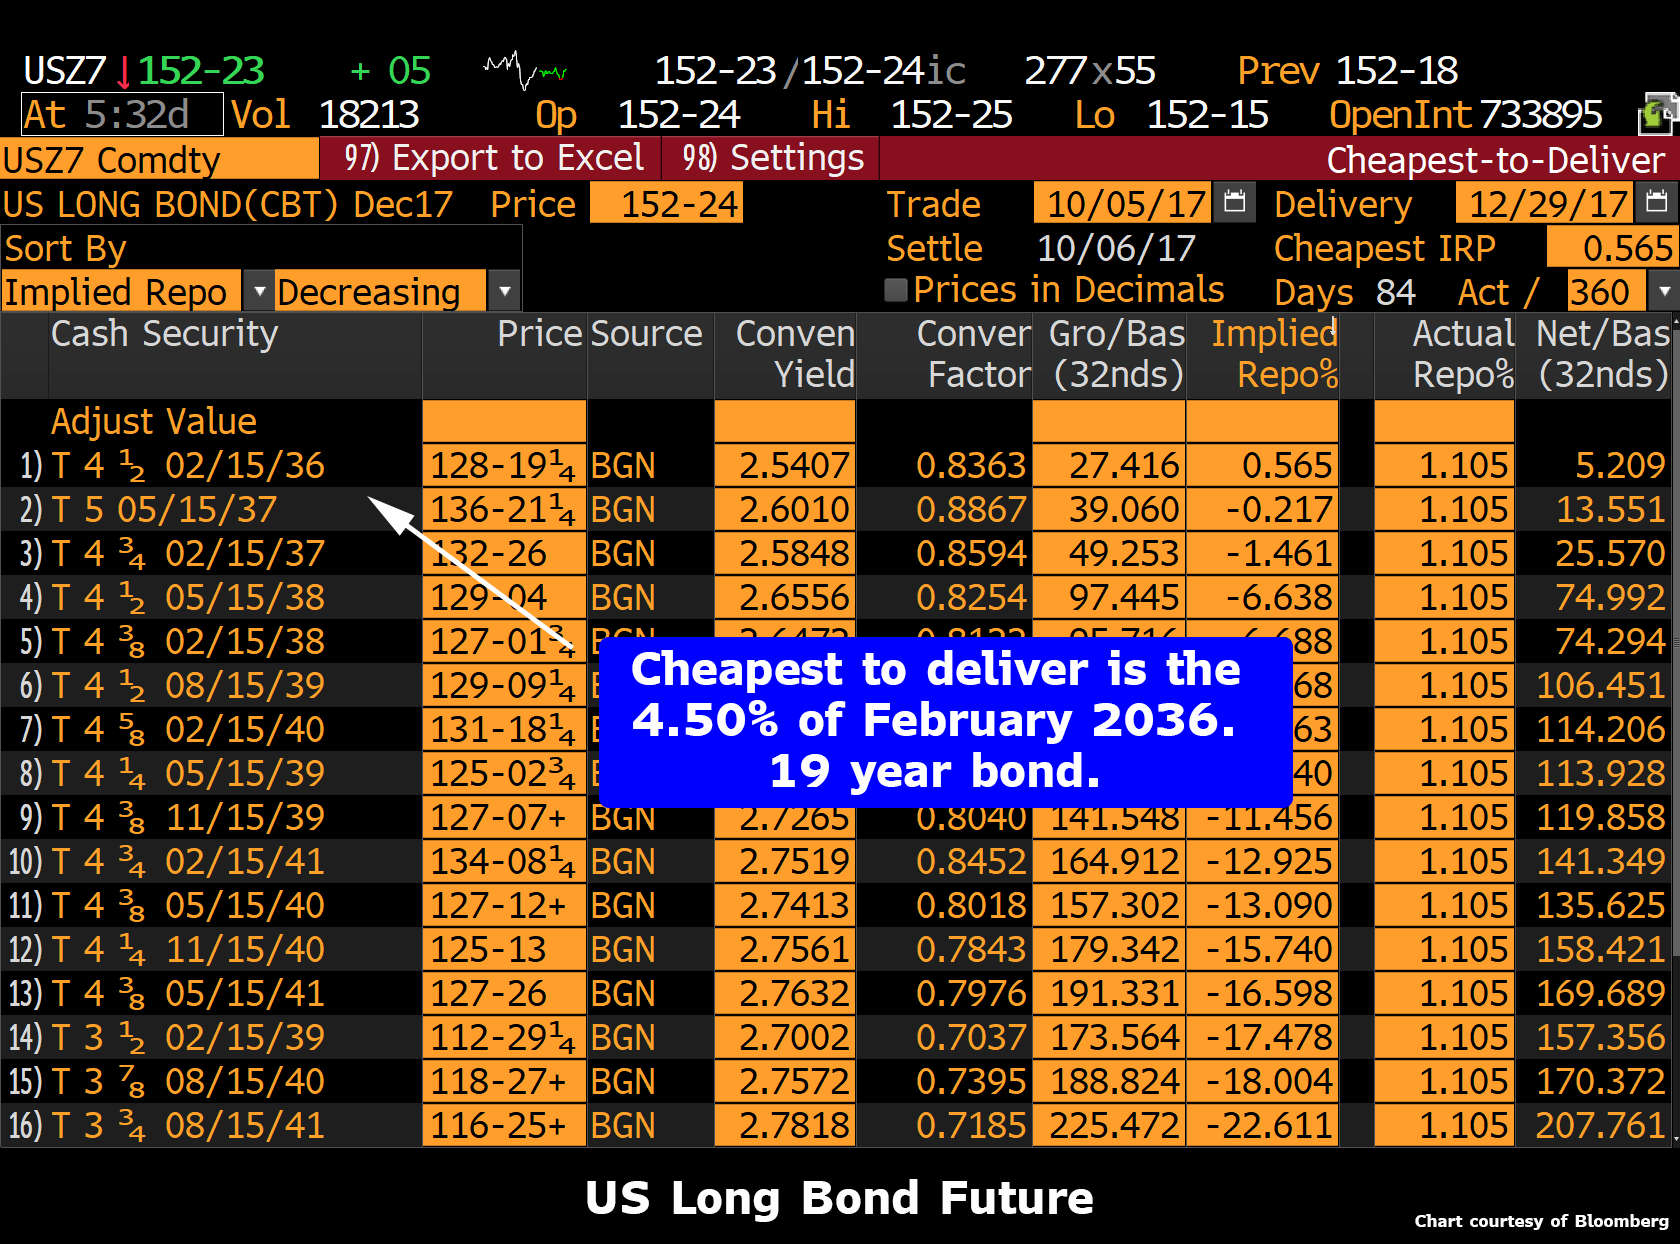 US Long Bond Future, Feb 2036 - 2041